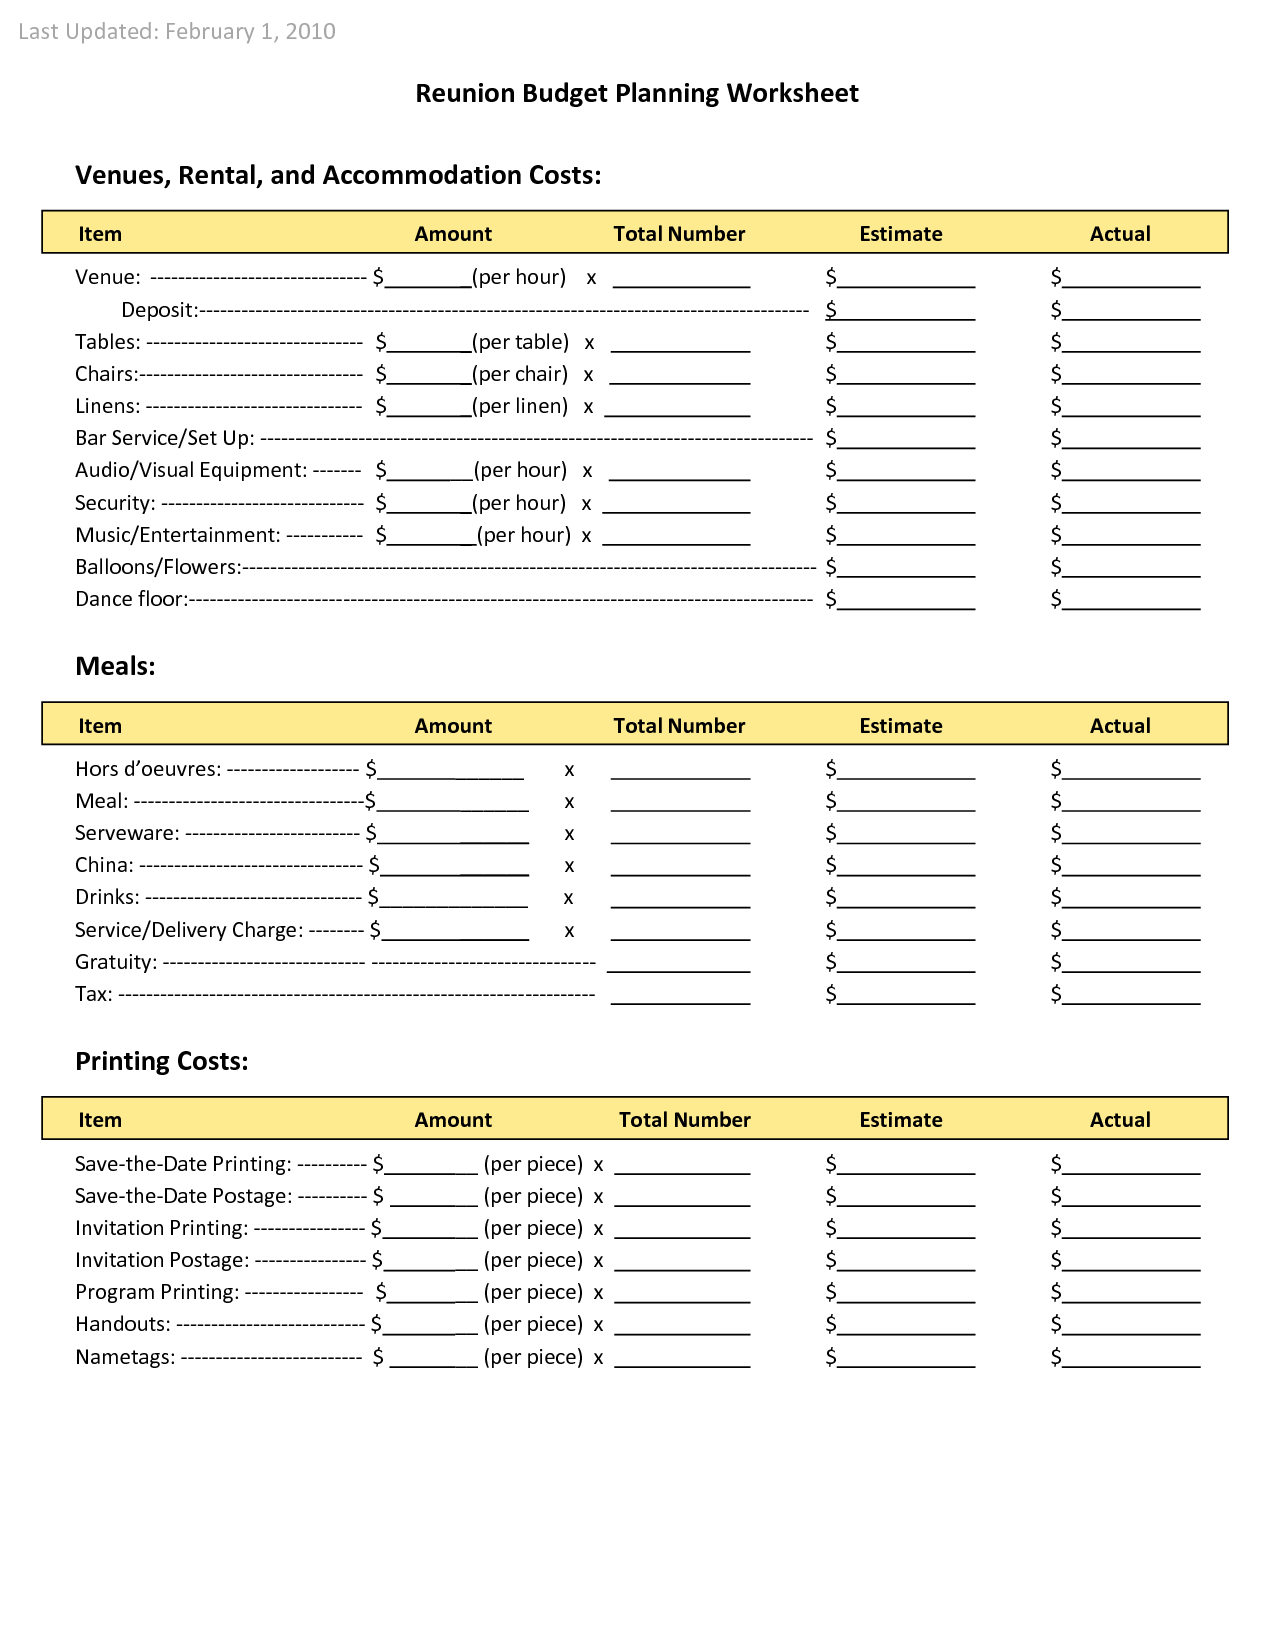 Sample Of A Budget Sheet and Family Reunion Planners Reunion Bud Planning Worksheet Venues